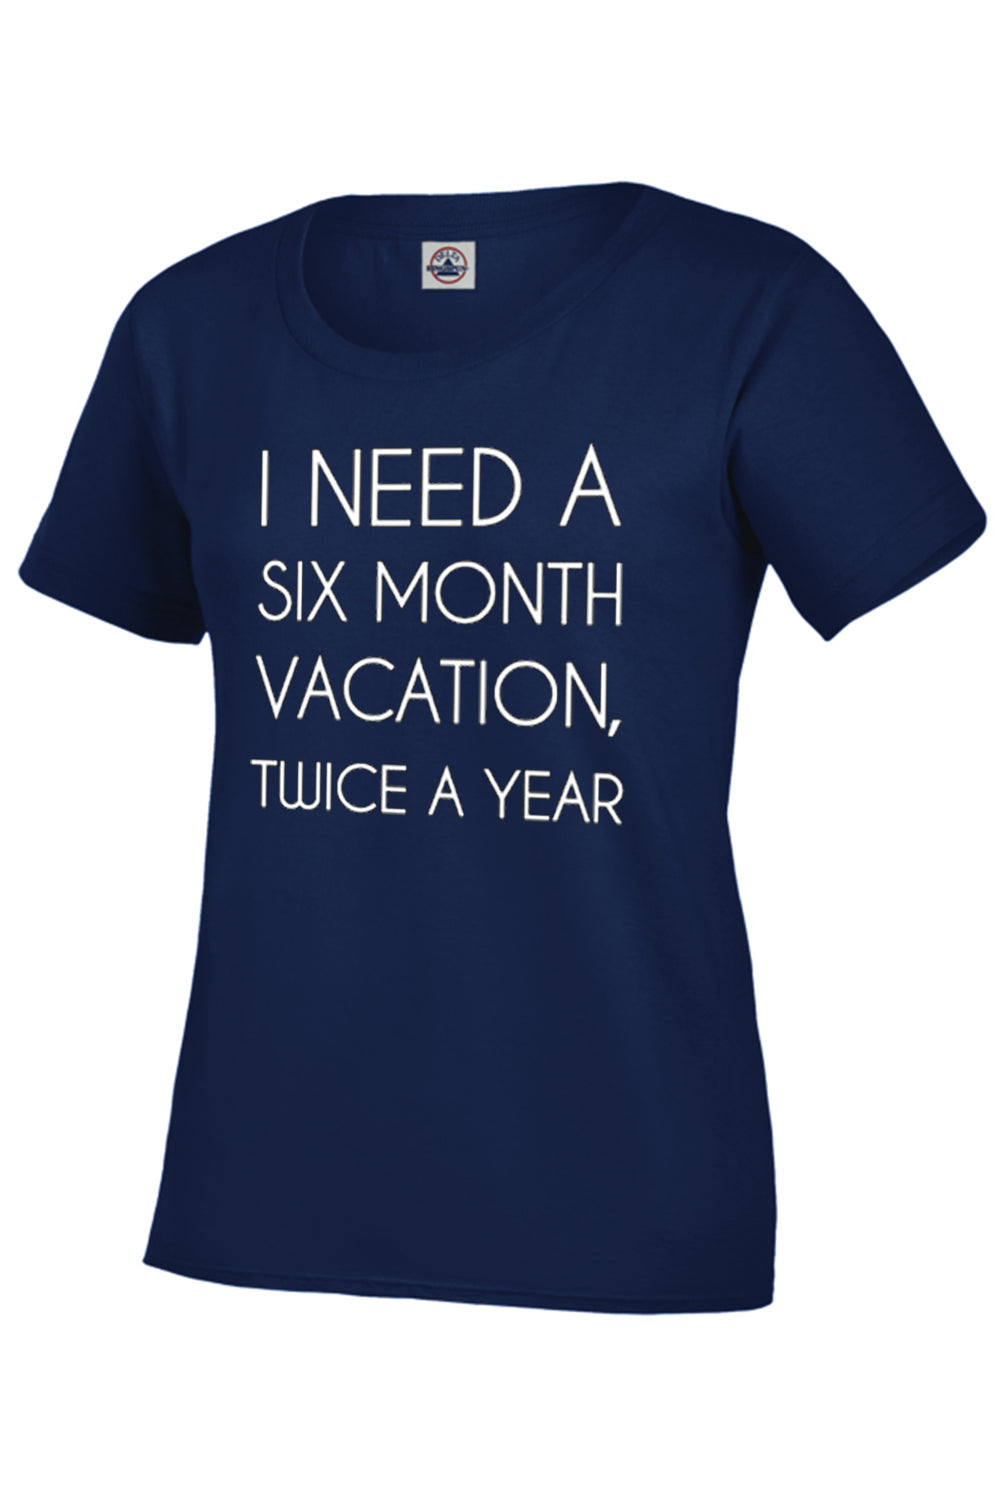 I Need A 6 Month Vacation Girl's T-Shirt